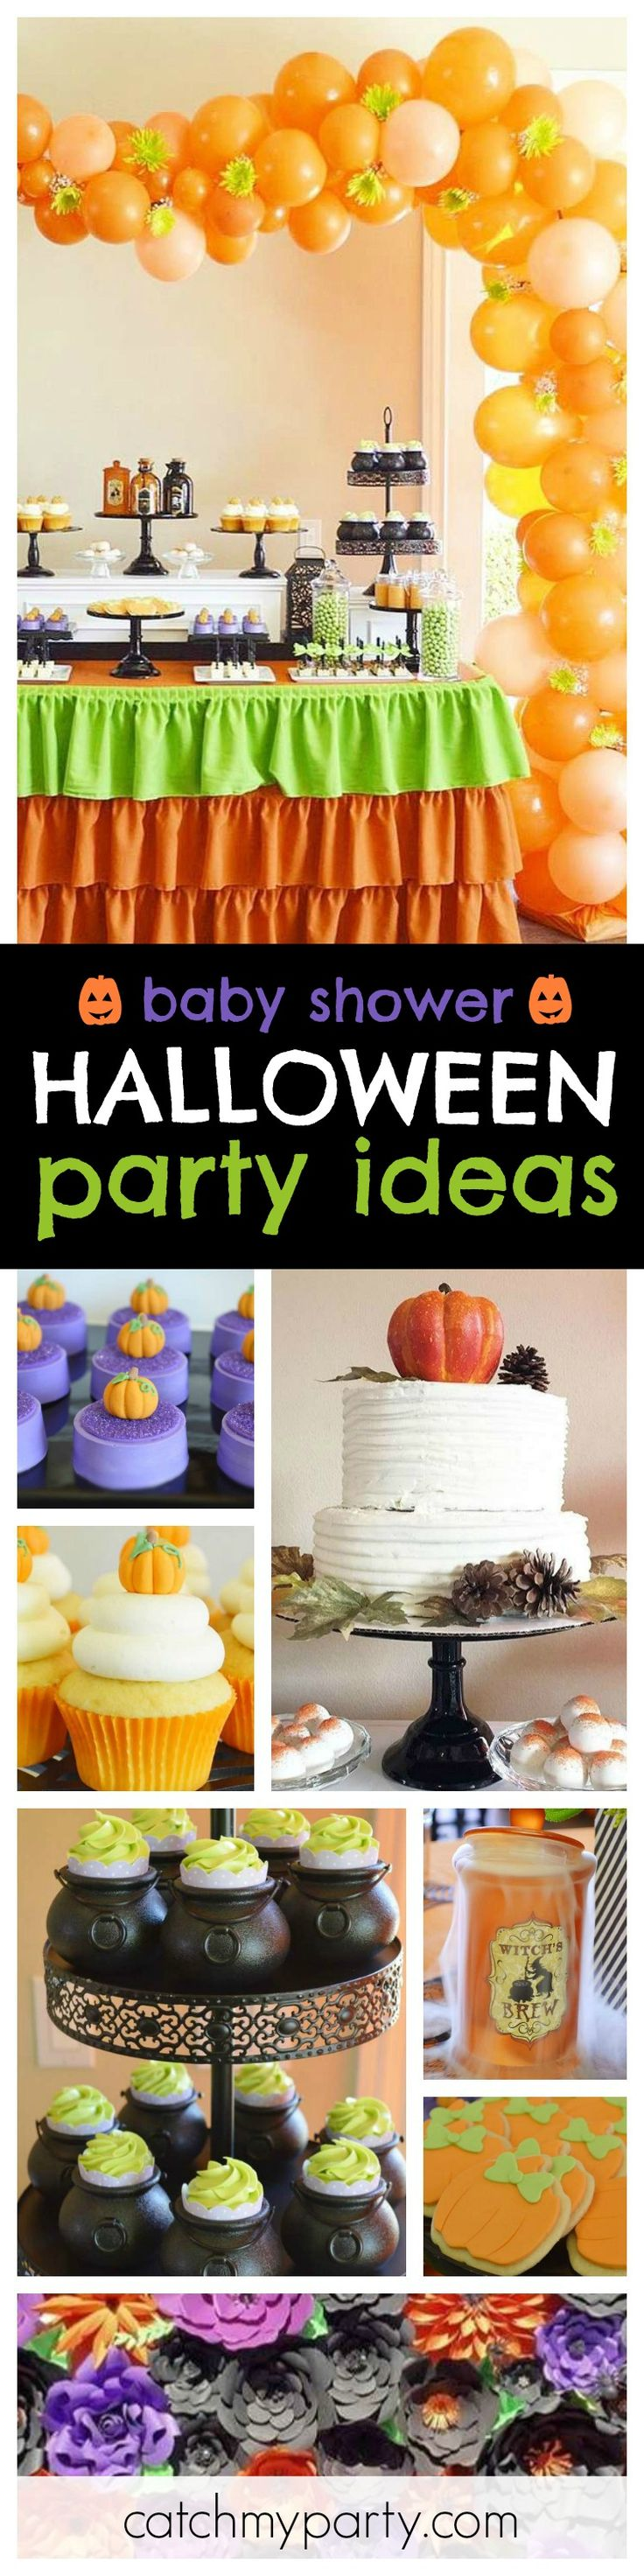 909 best Halloween Party Ideas images on Pinterest